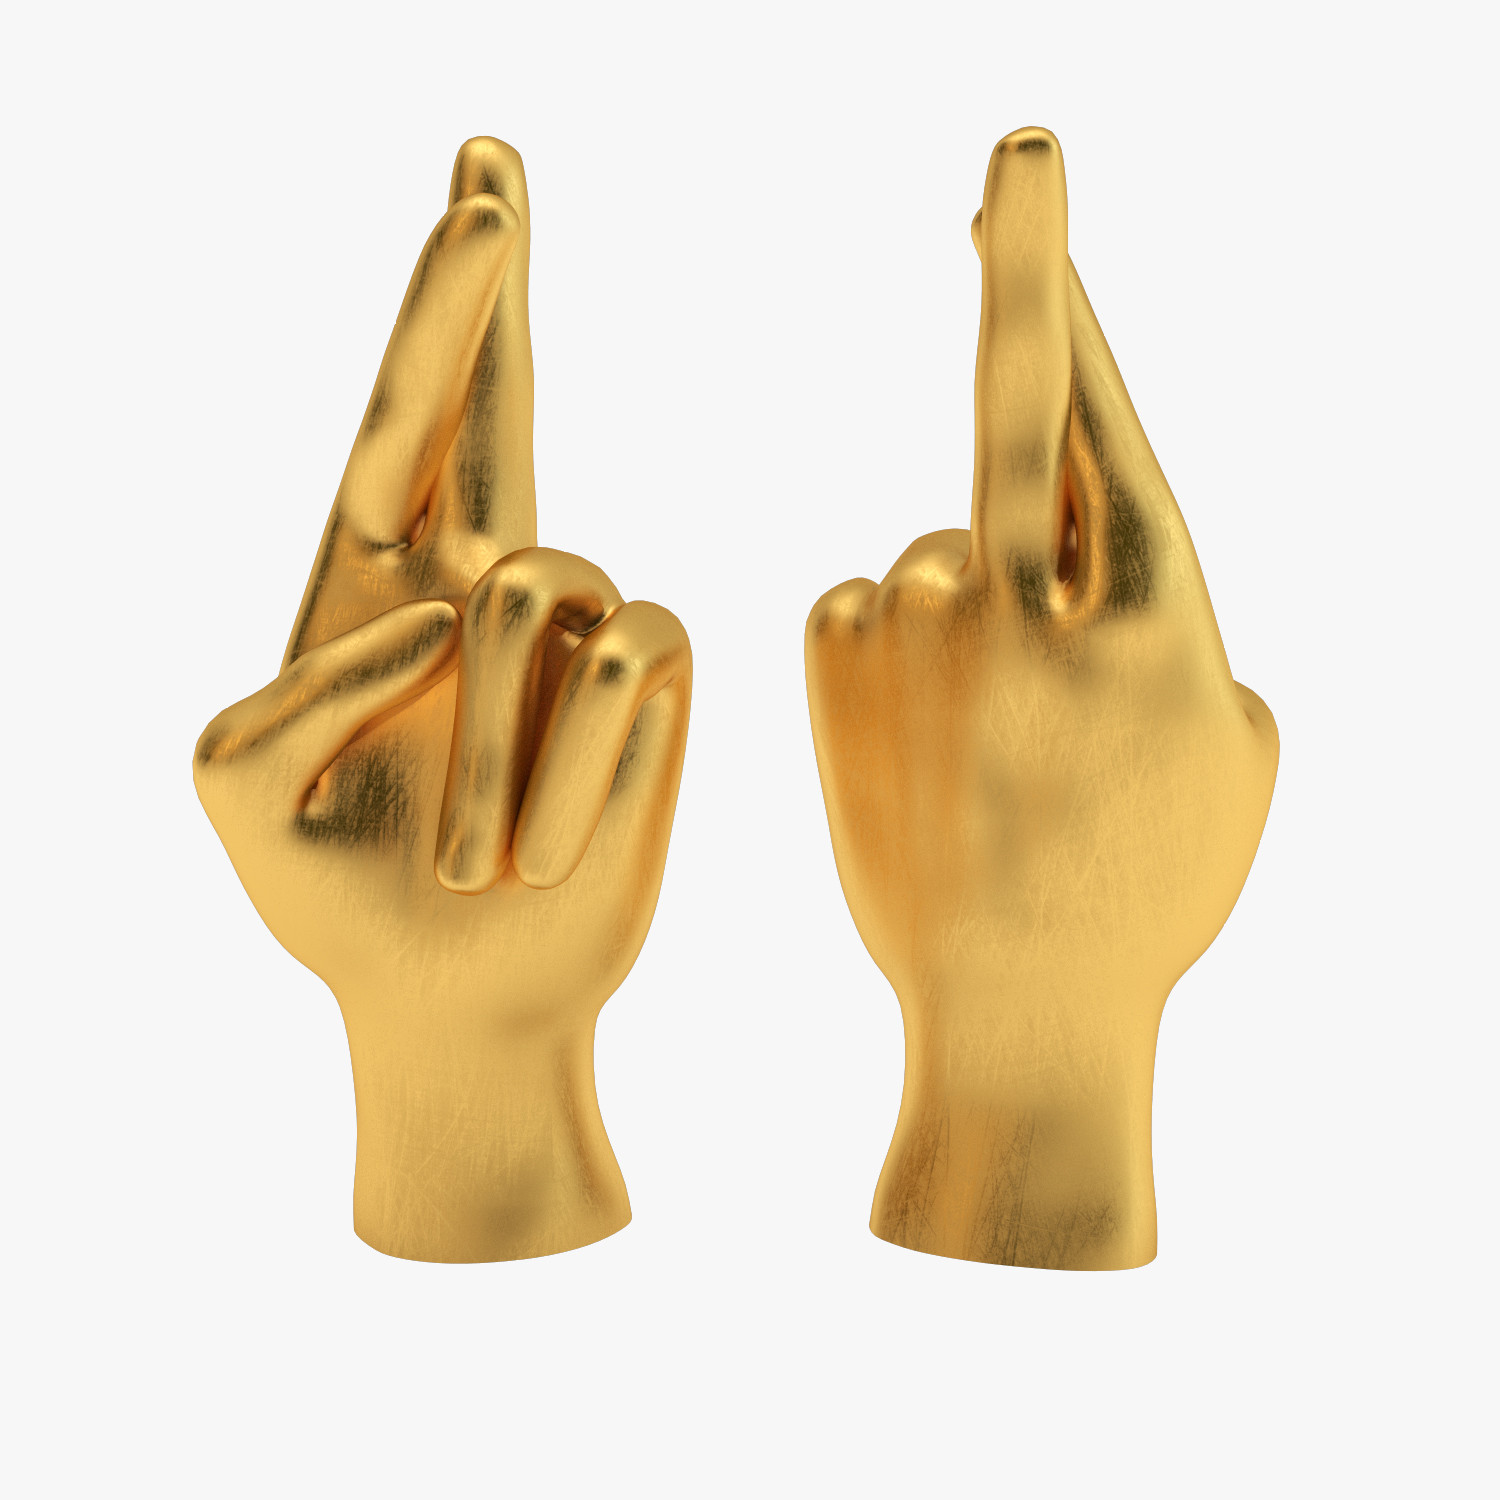 3d model realistic brass fingers crossed